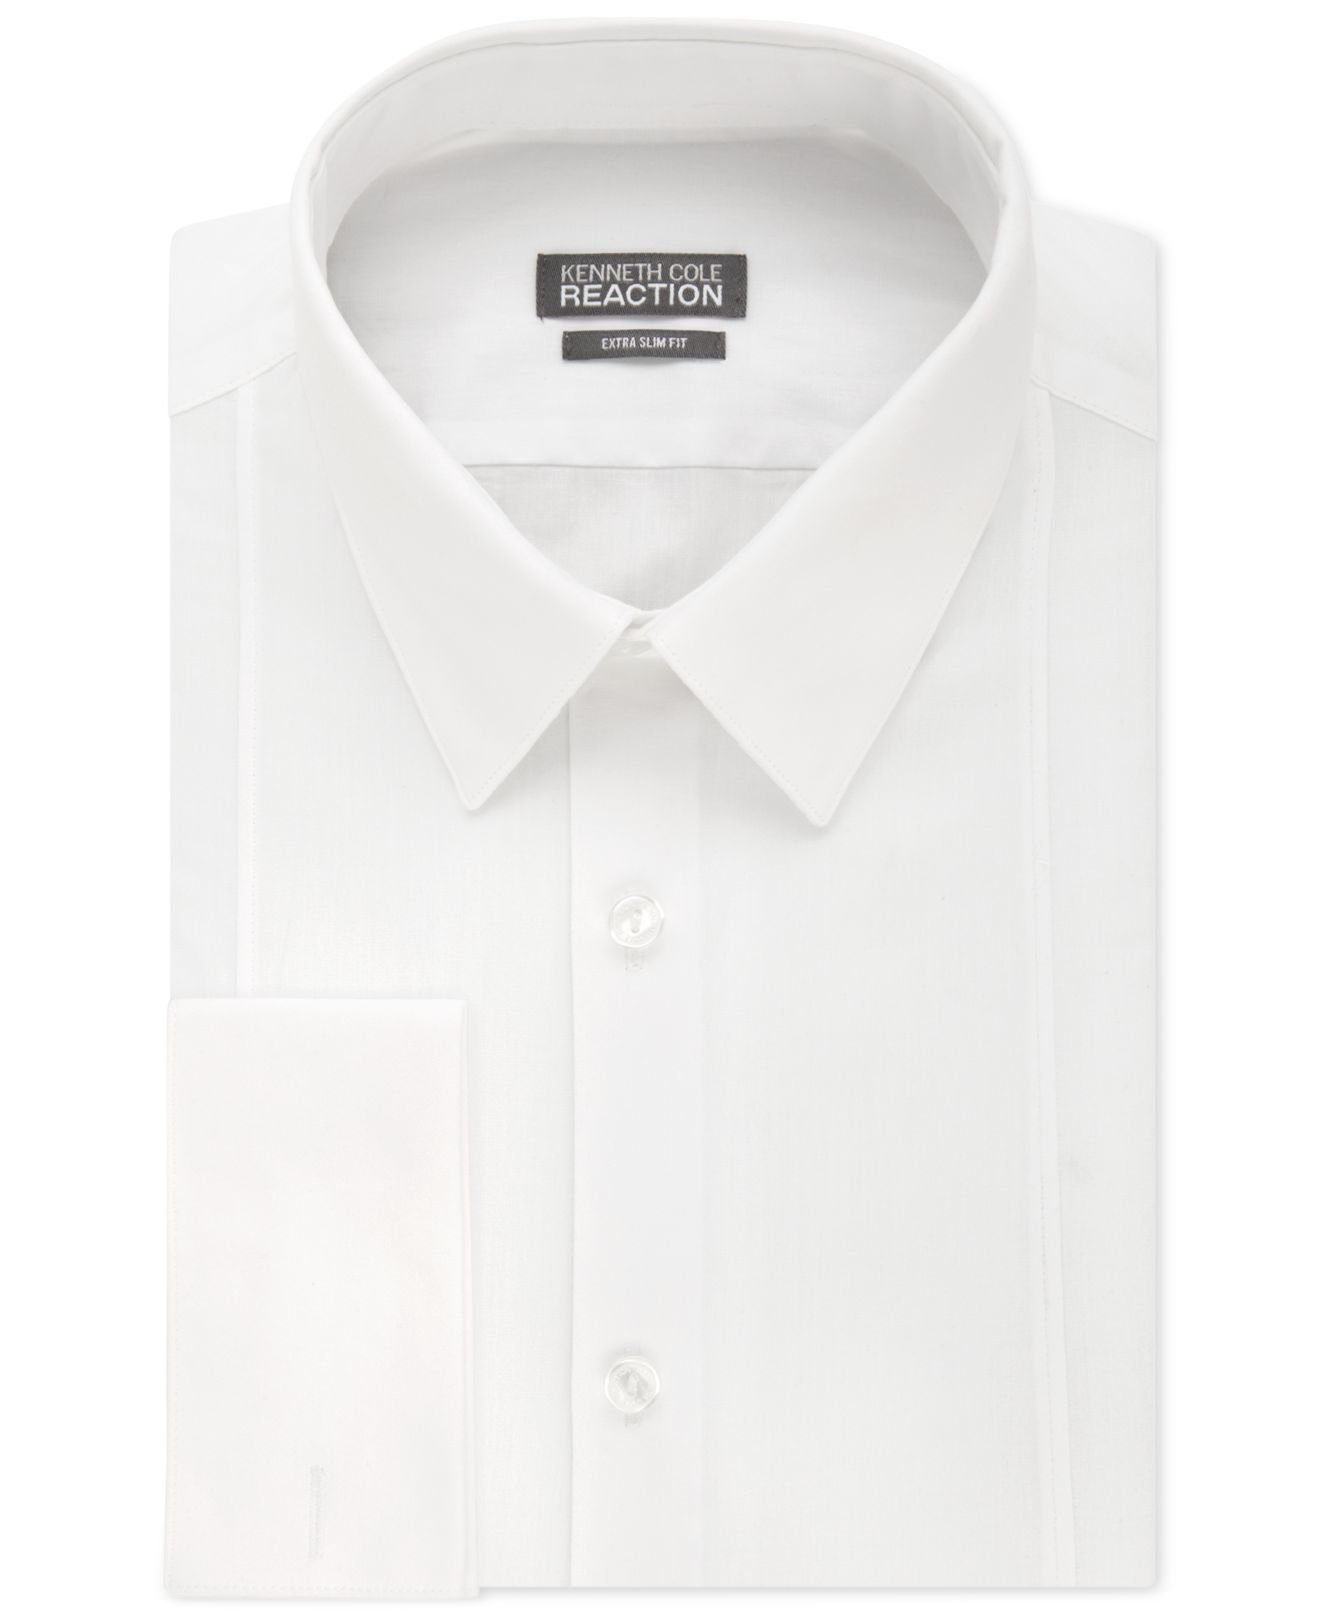 Lyst kenneth cole reaction extra slim fit solid white for White french cuff shirt slim fit